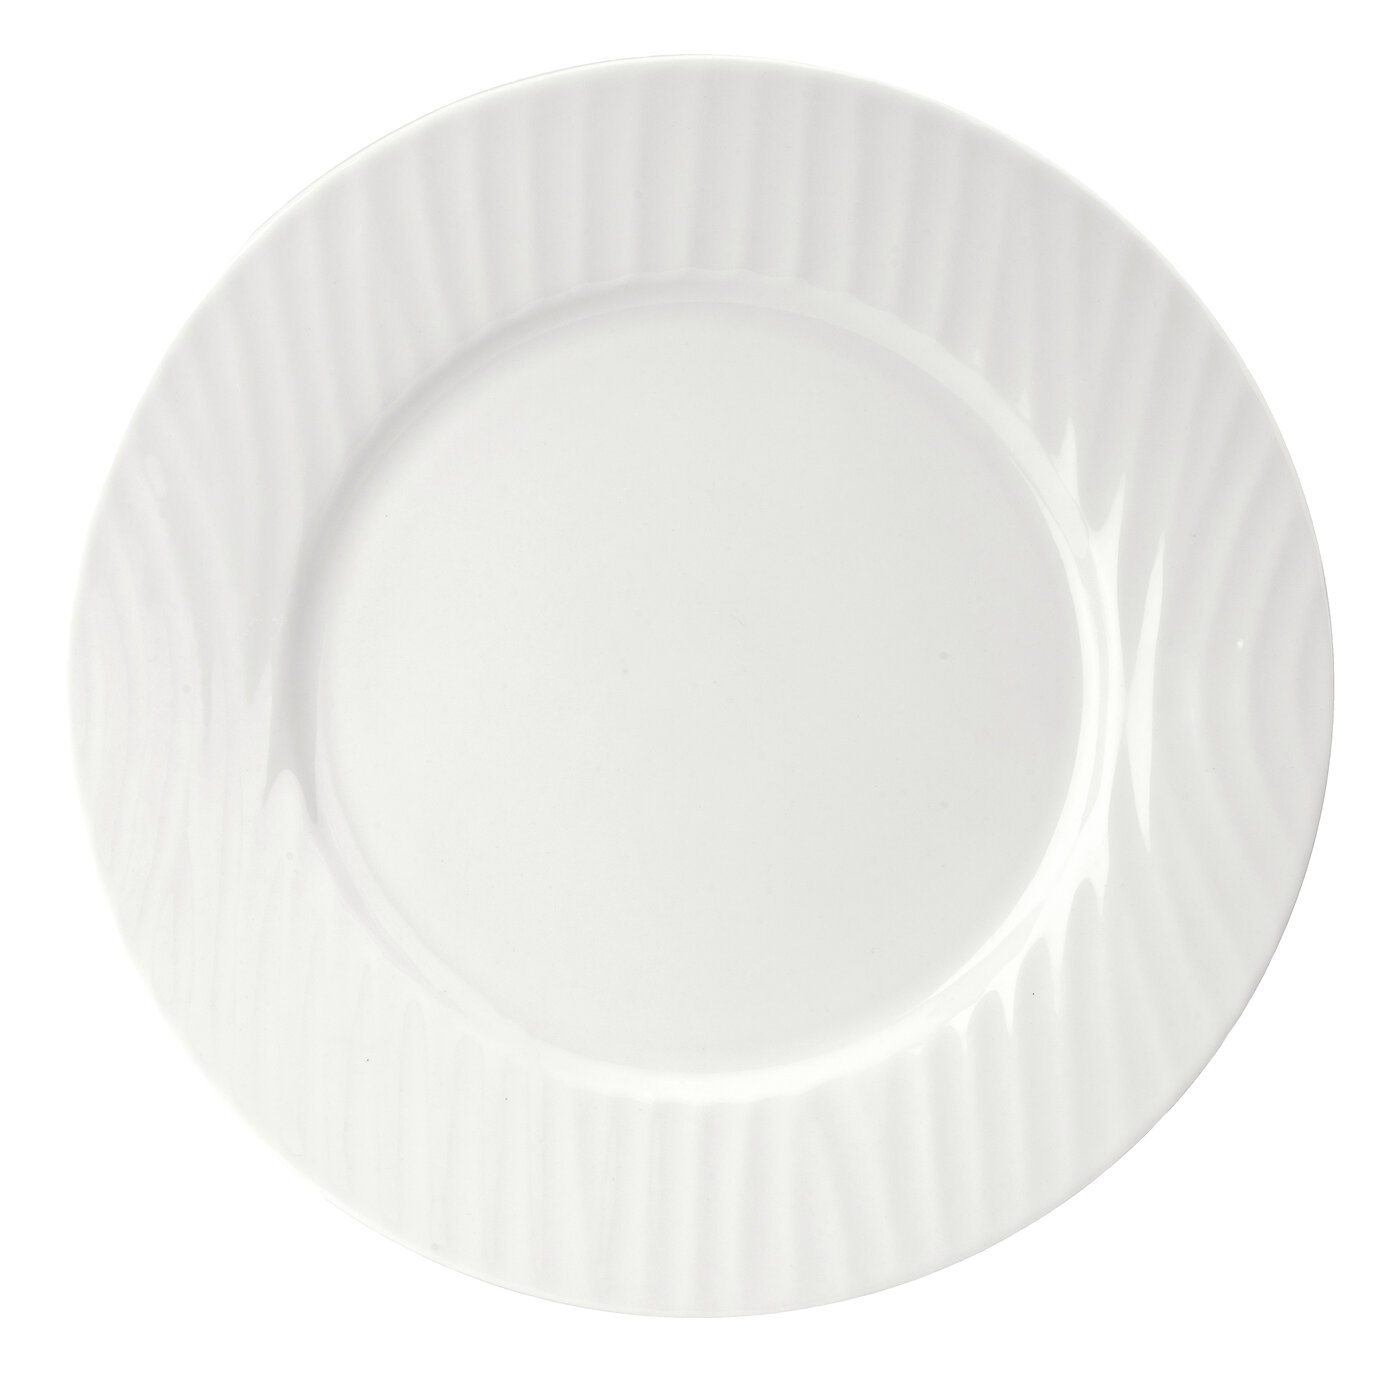 Sophie Conran for Portmeirion White Oak 8.5 Inch Rimmed Salad Plate image number 0